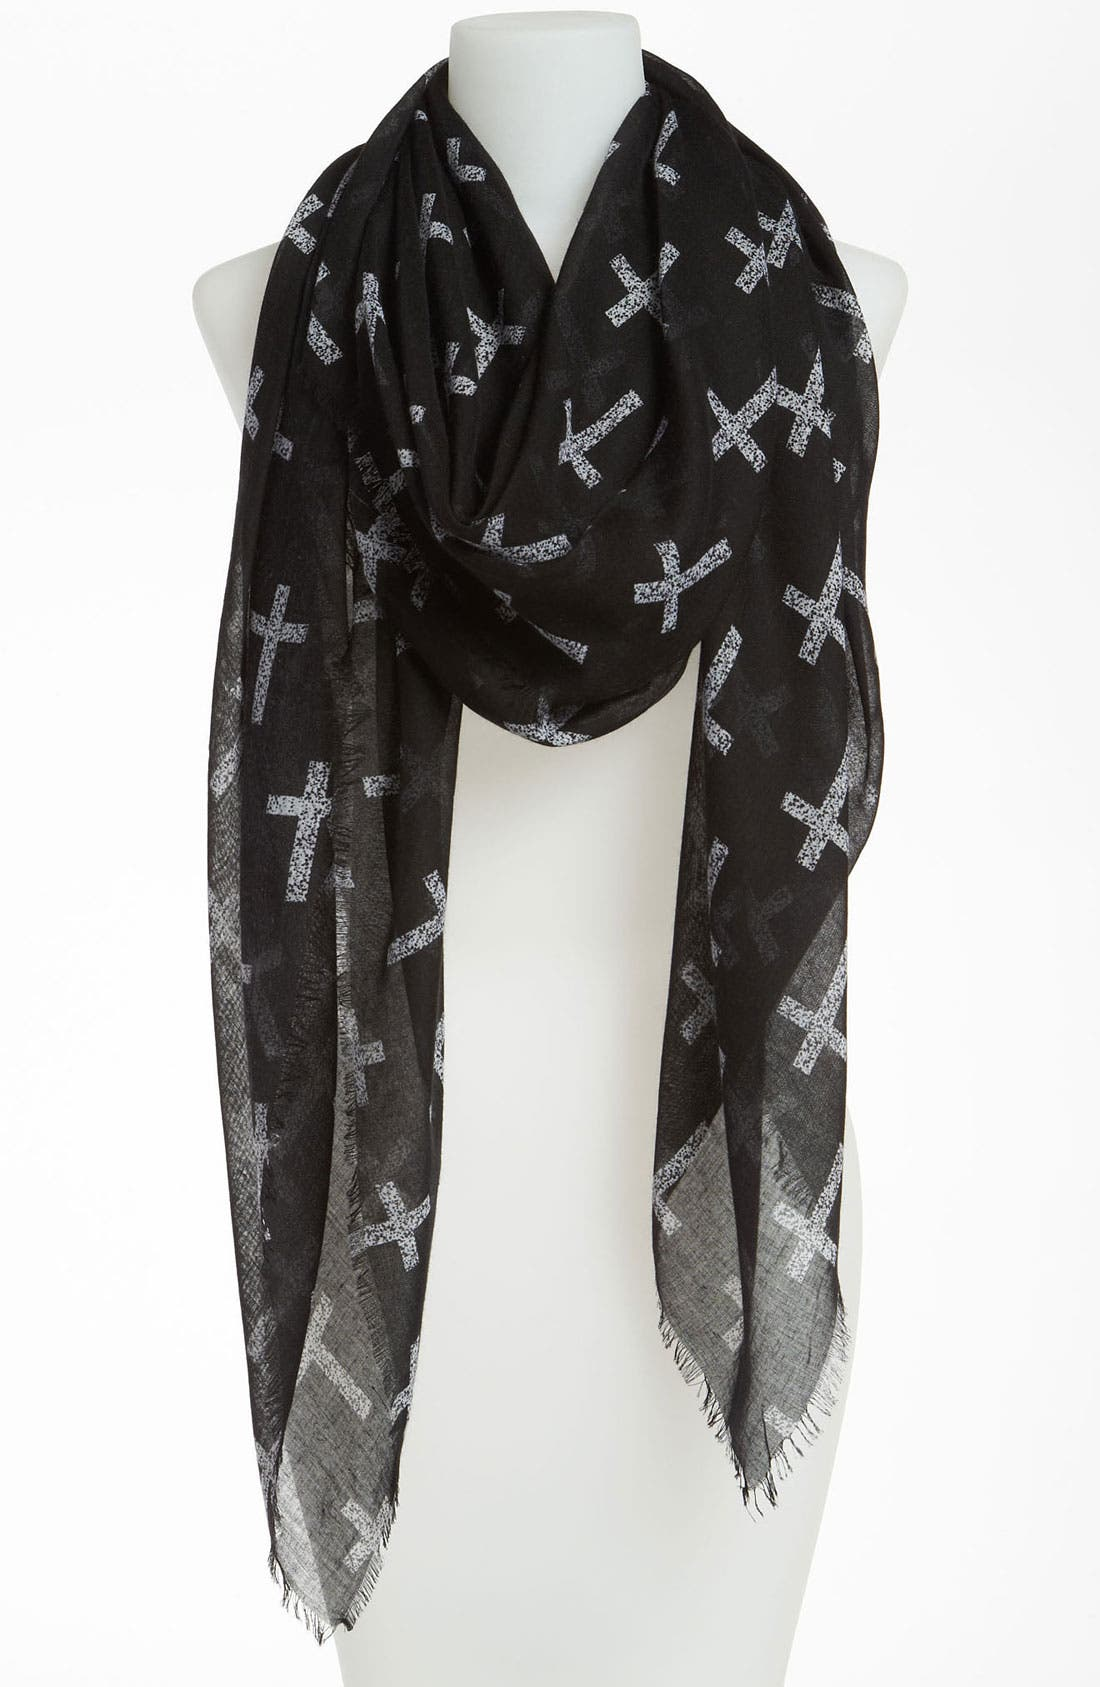 Alternate Image 1 Selected - BP. 'Allover Cross' Scarf